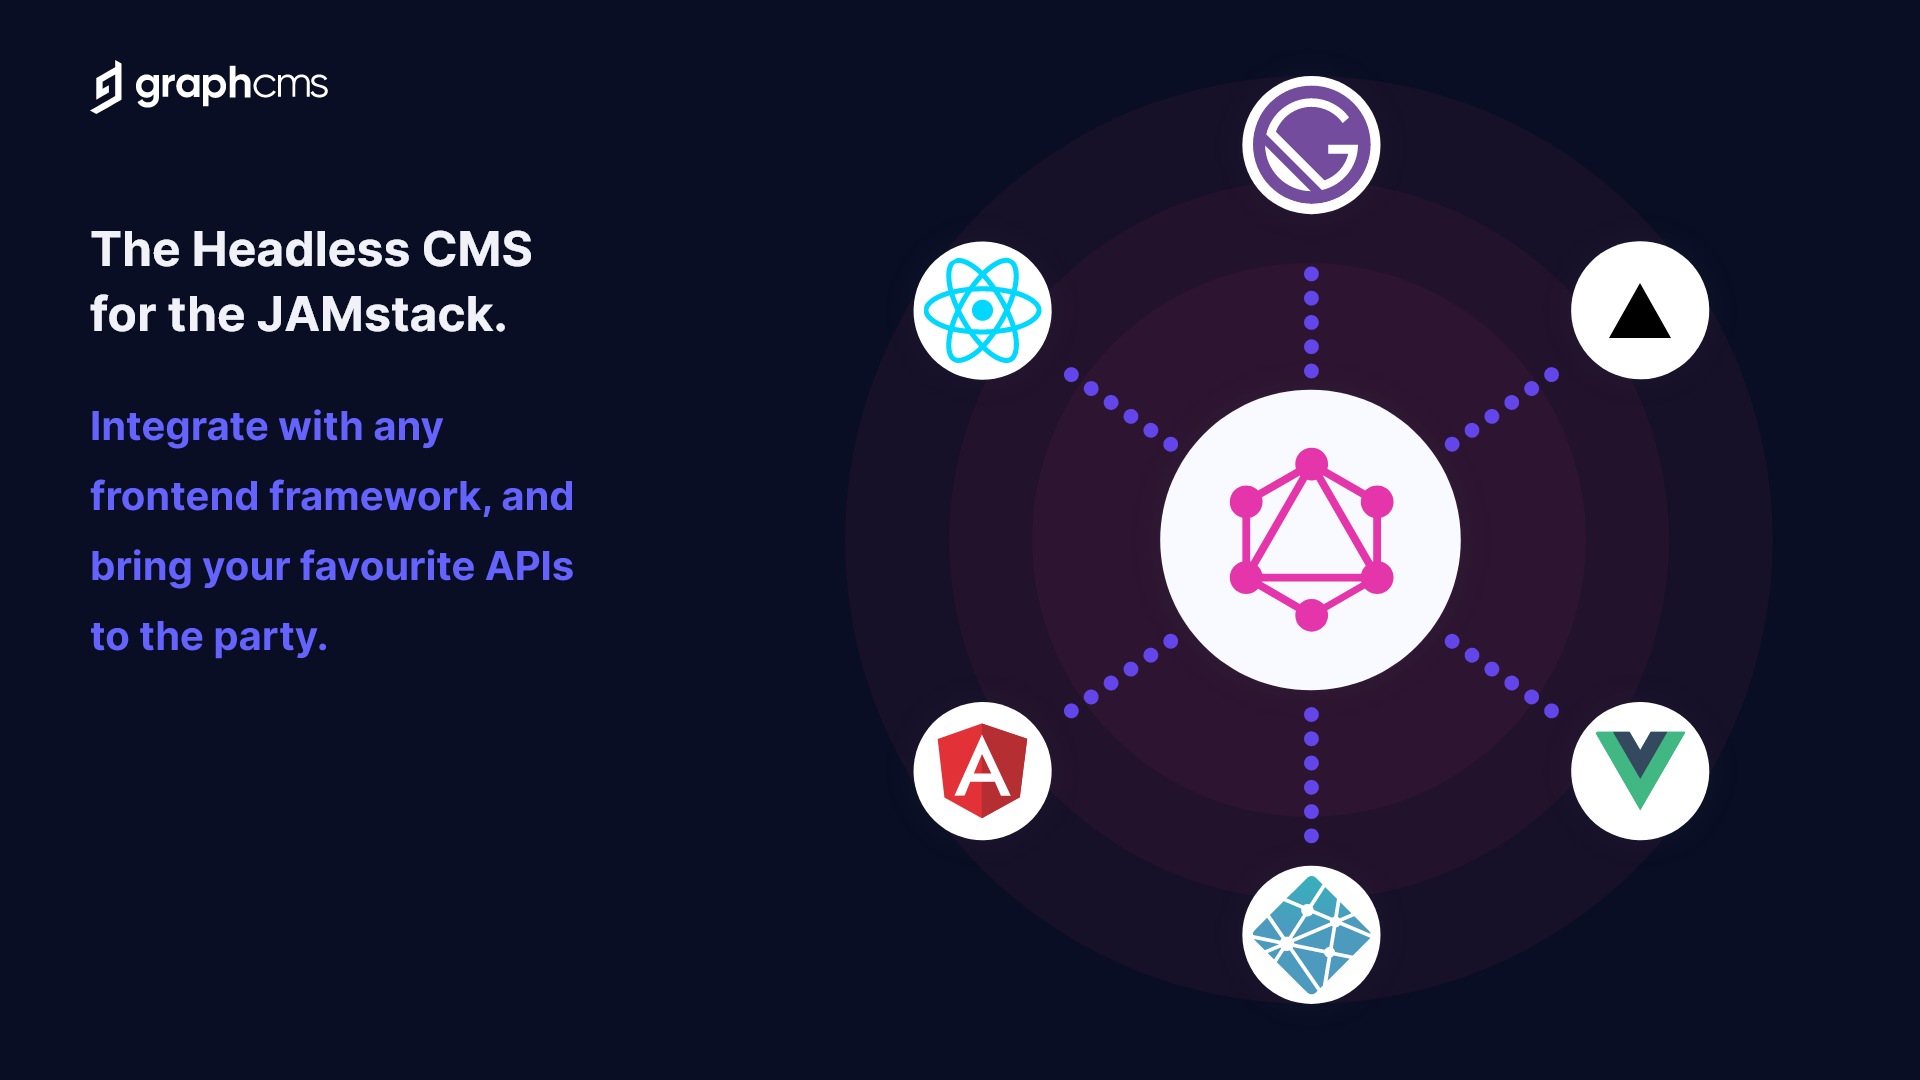 GraphCMS is the Headless CMS for the Jamstack, integrating with any frontend framework like React, Angular, Vue, Gatsby, and NextJS.